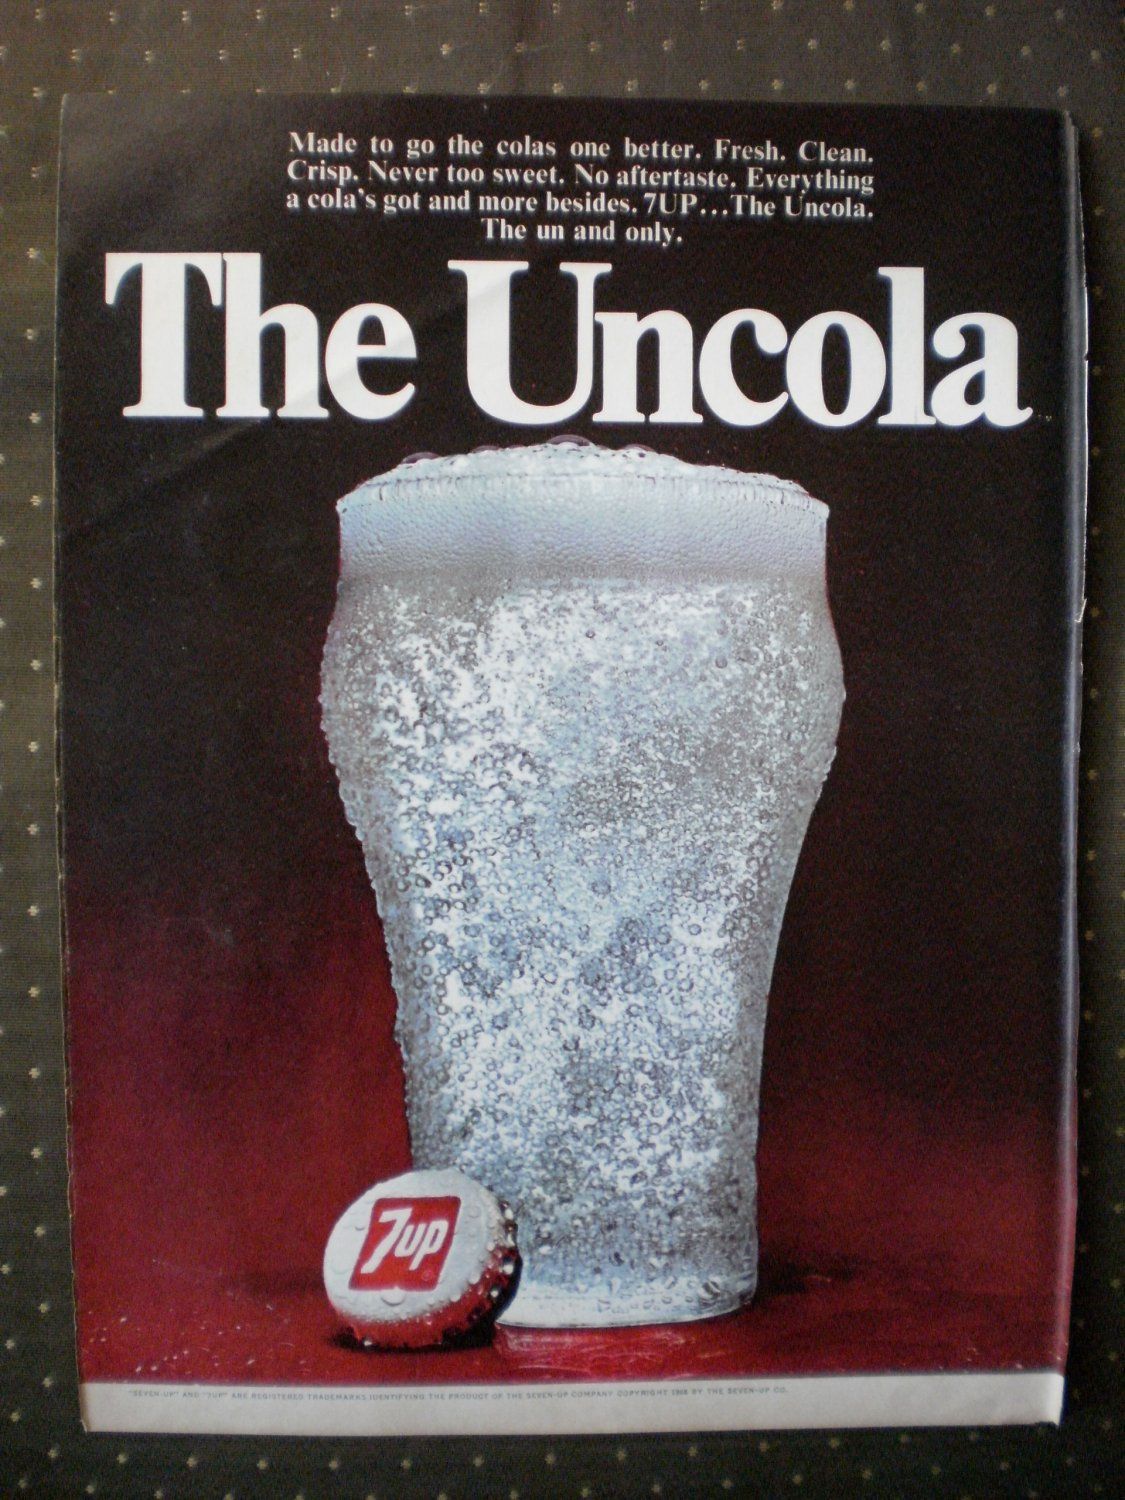 7up Uncola Soda Glass Un Cola Vintage Ad 1968